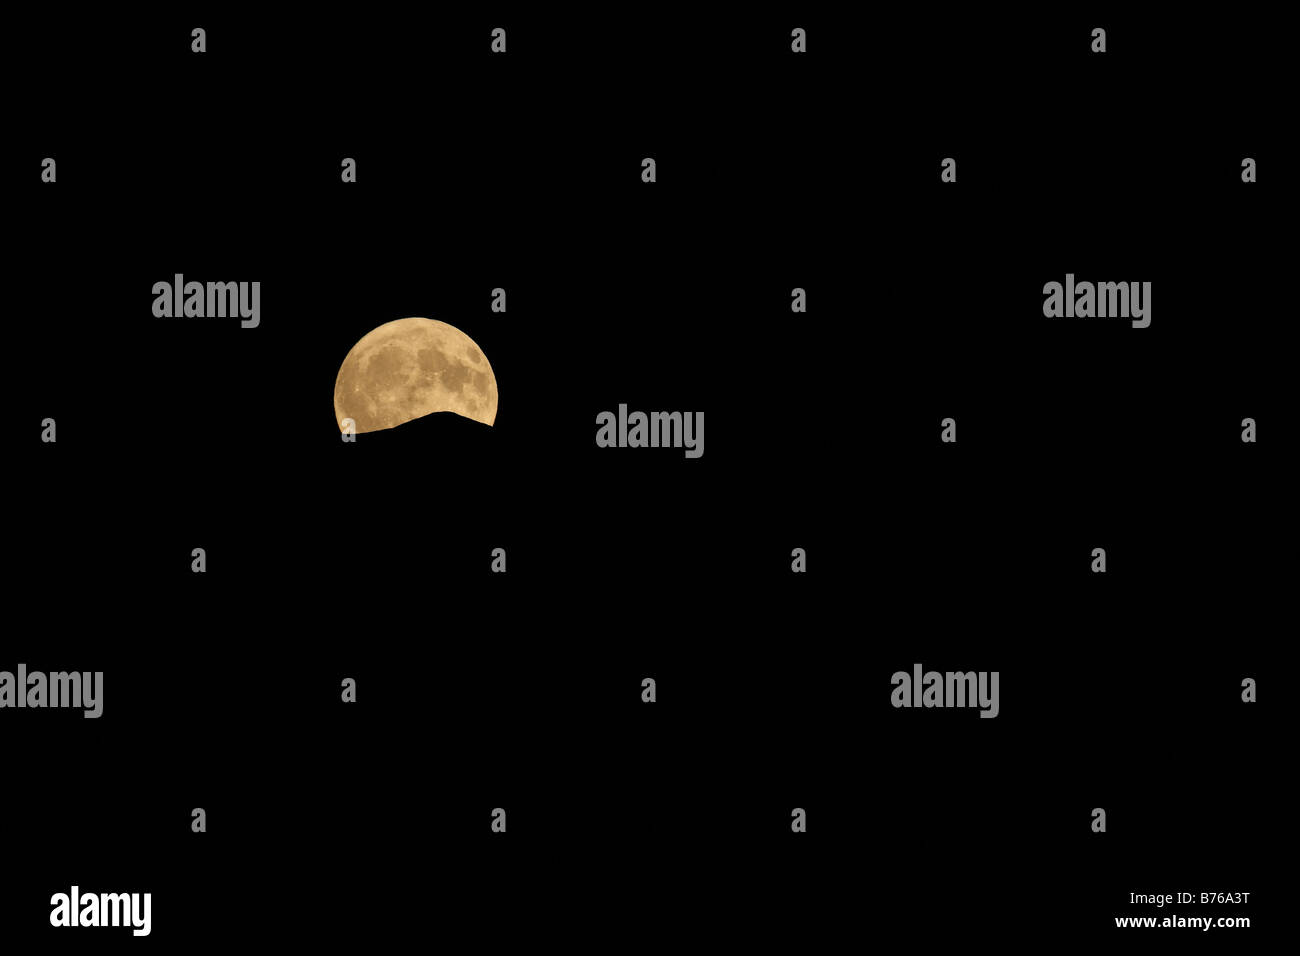 full moon ticino tessin switzerland europe night sky swiss moon light - Stock Image